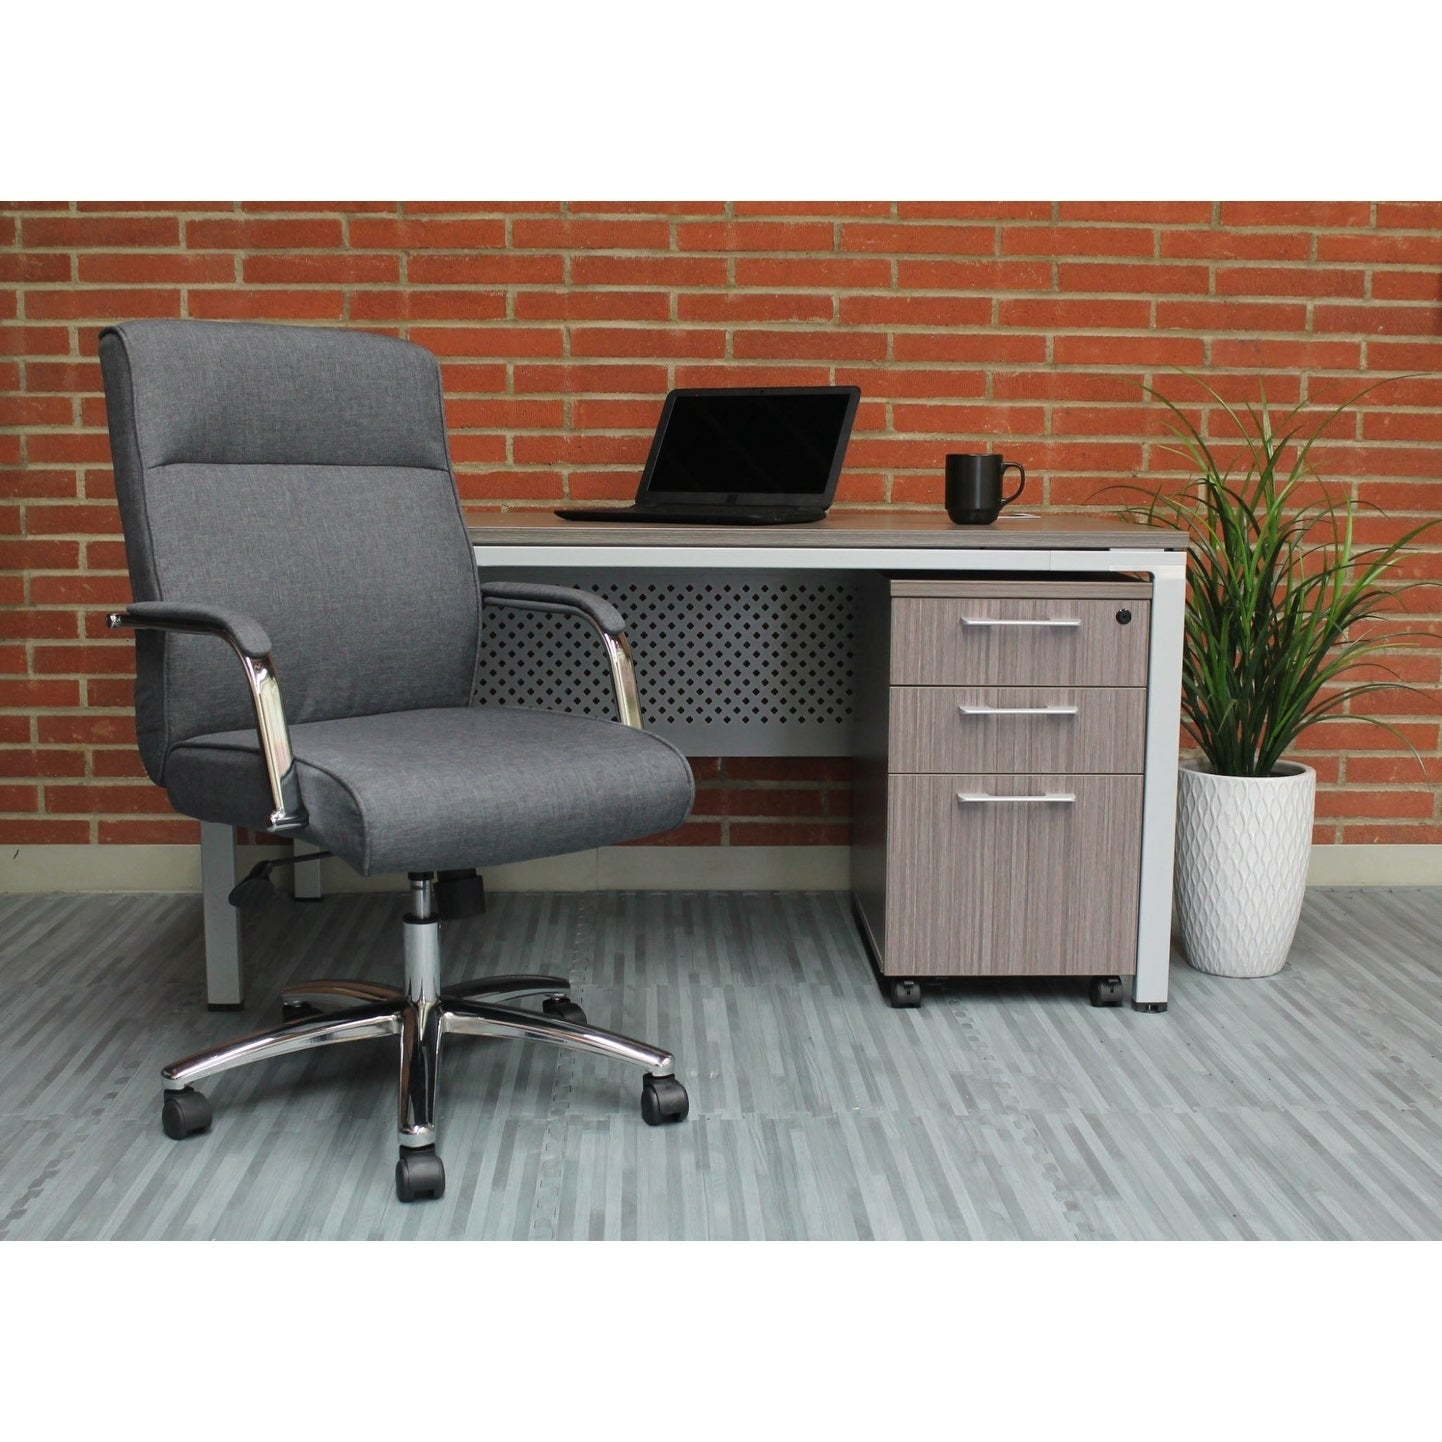 shop boss office products modern executive conference chair free rh overstock com boss office furniture hereford boss office furniture pakistan